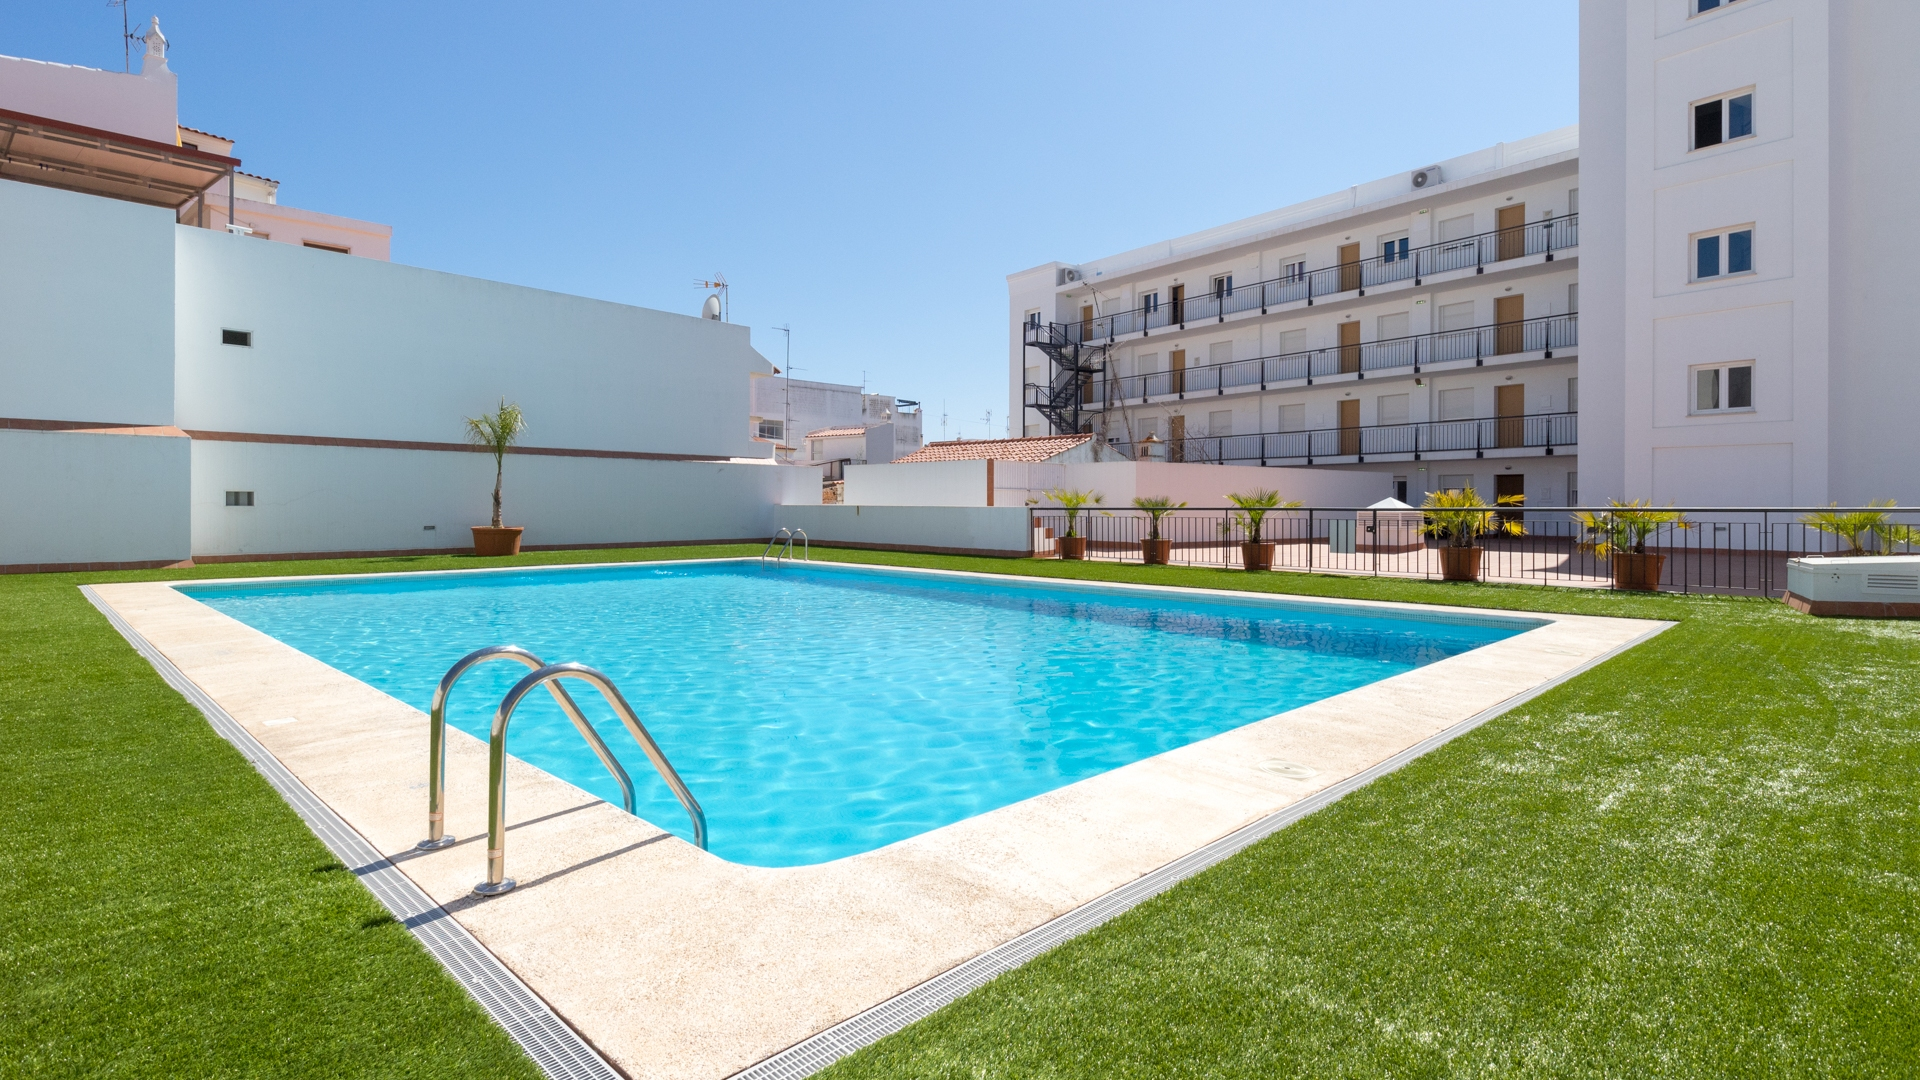 Modern 2-Bedroom Apartments with Communal Swimming Pool, Vila Real de Santo António | TV1173 An excellent opportunity to buy a new apartment within easy reach of the beaches and Spain. Several 1-bedroom apartments are also available. In Vila Real de Santo António.